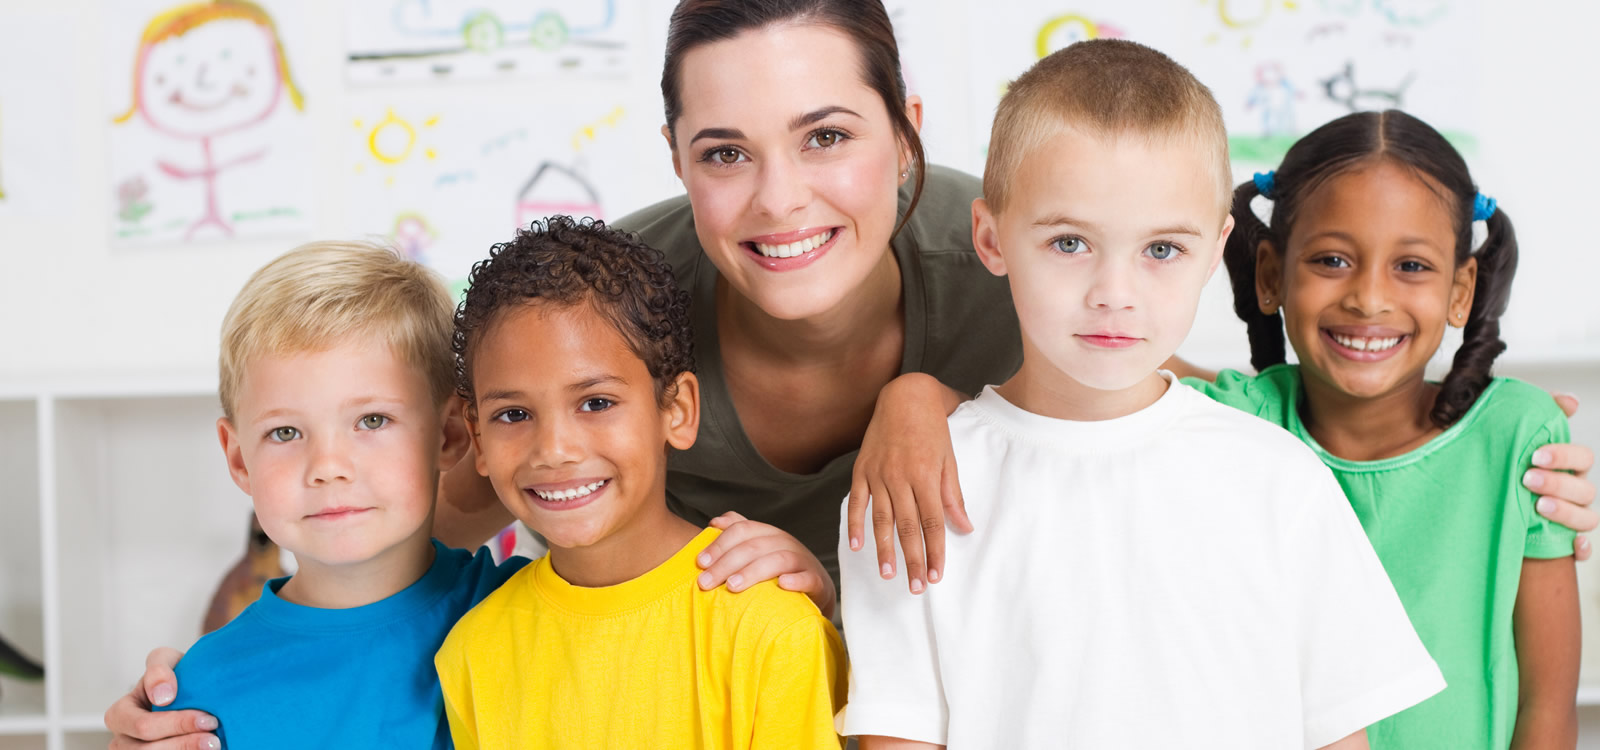 Smiling female teacher with her arms around 4 children